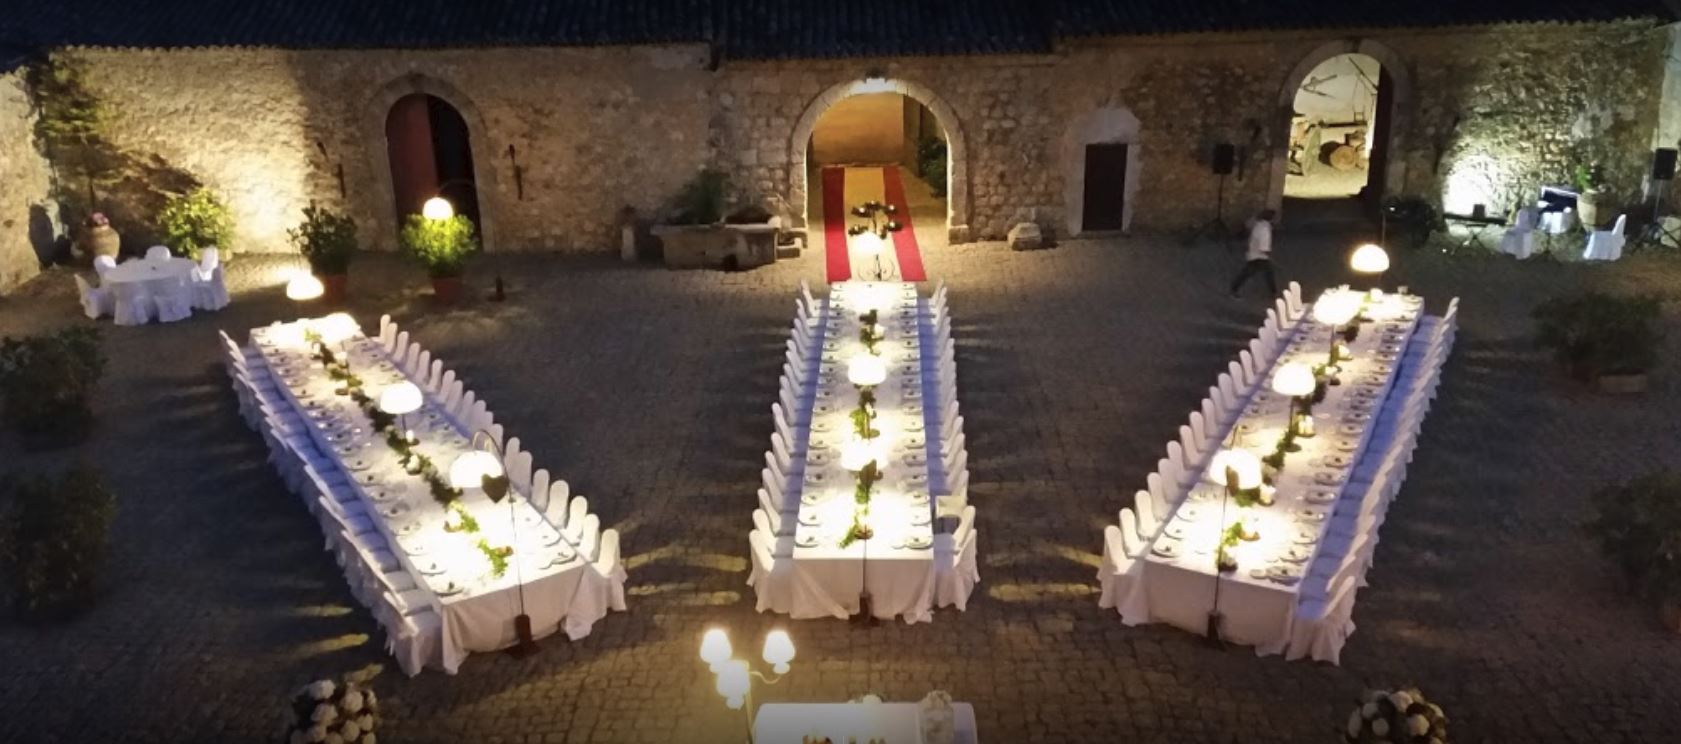 Masseria Mandrascate: location top per matrimoni